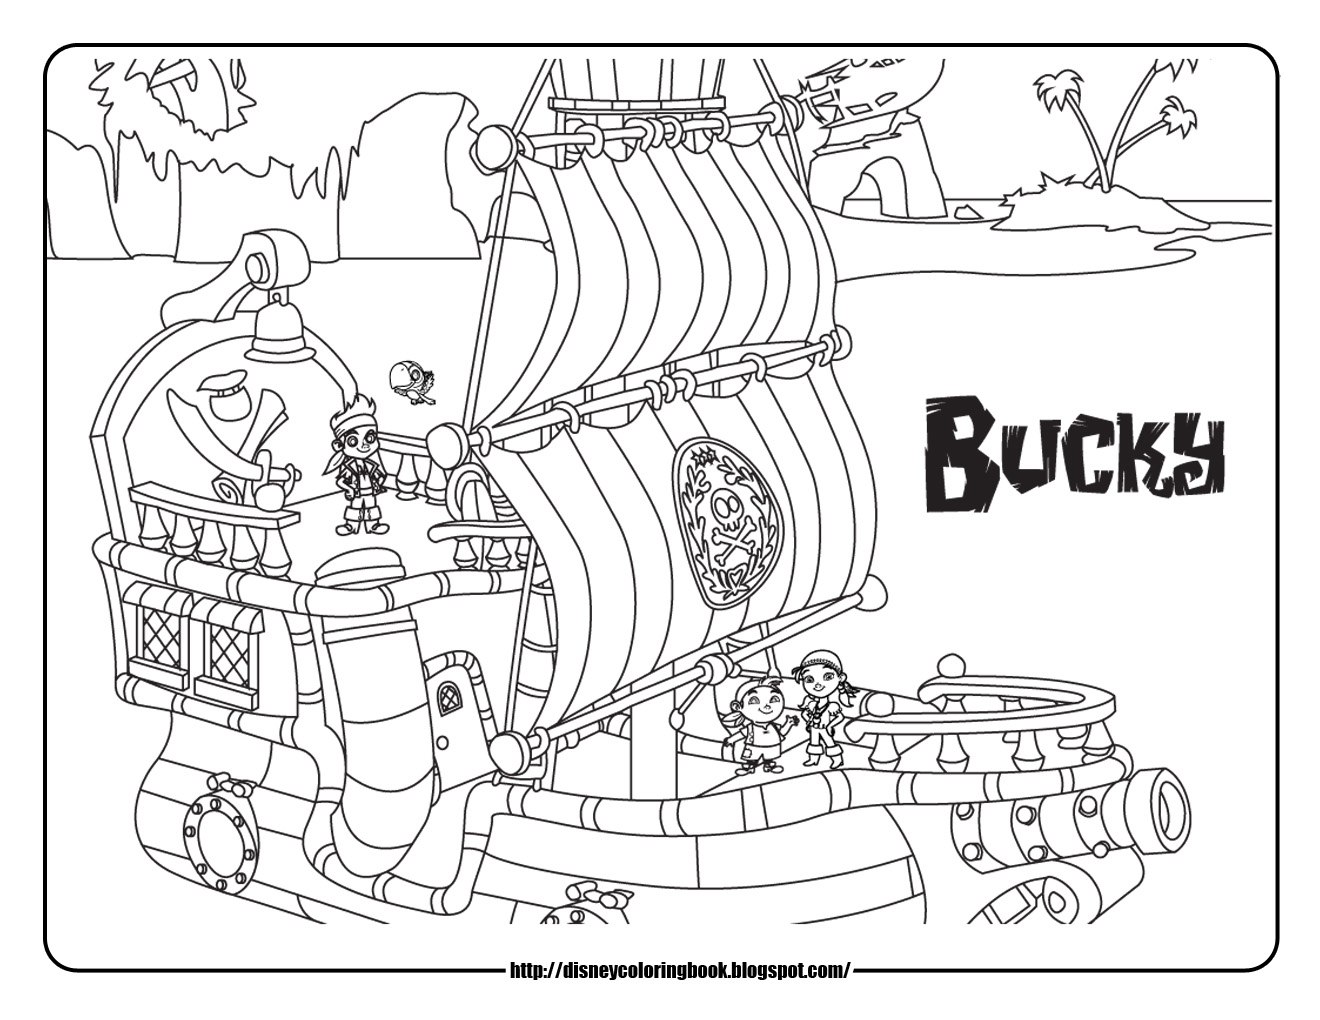 Pirate Ship Coloring Pages Free At Getdrawings Com Free For